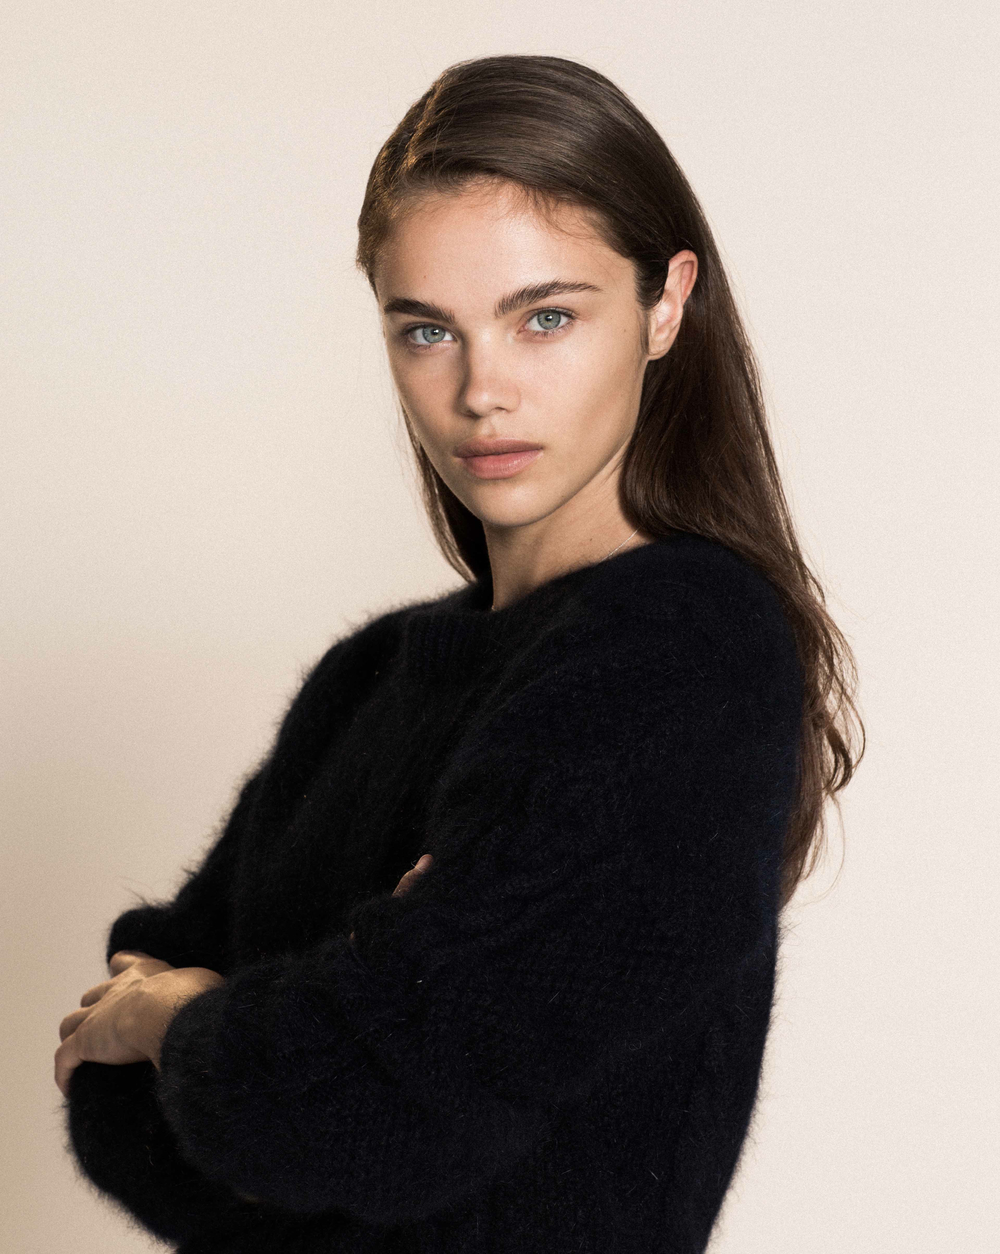 Pictures Jena Goldsack nude photos 2019